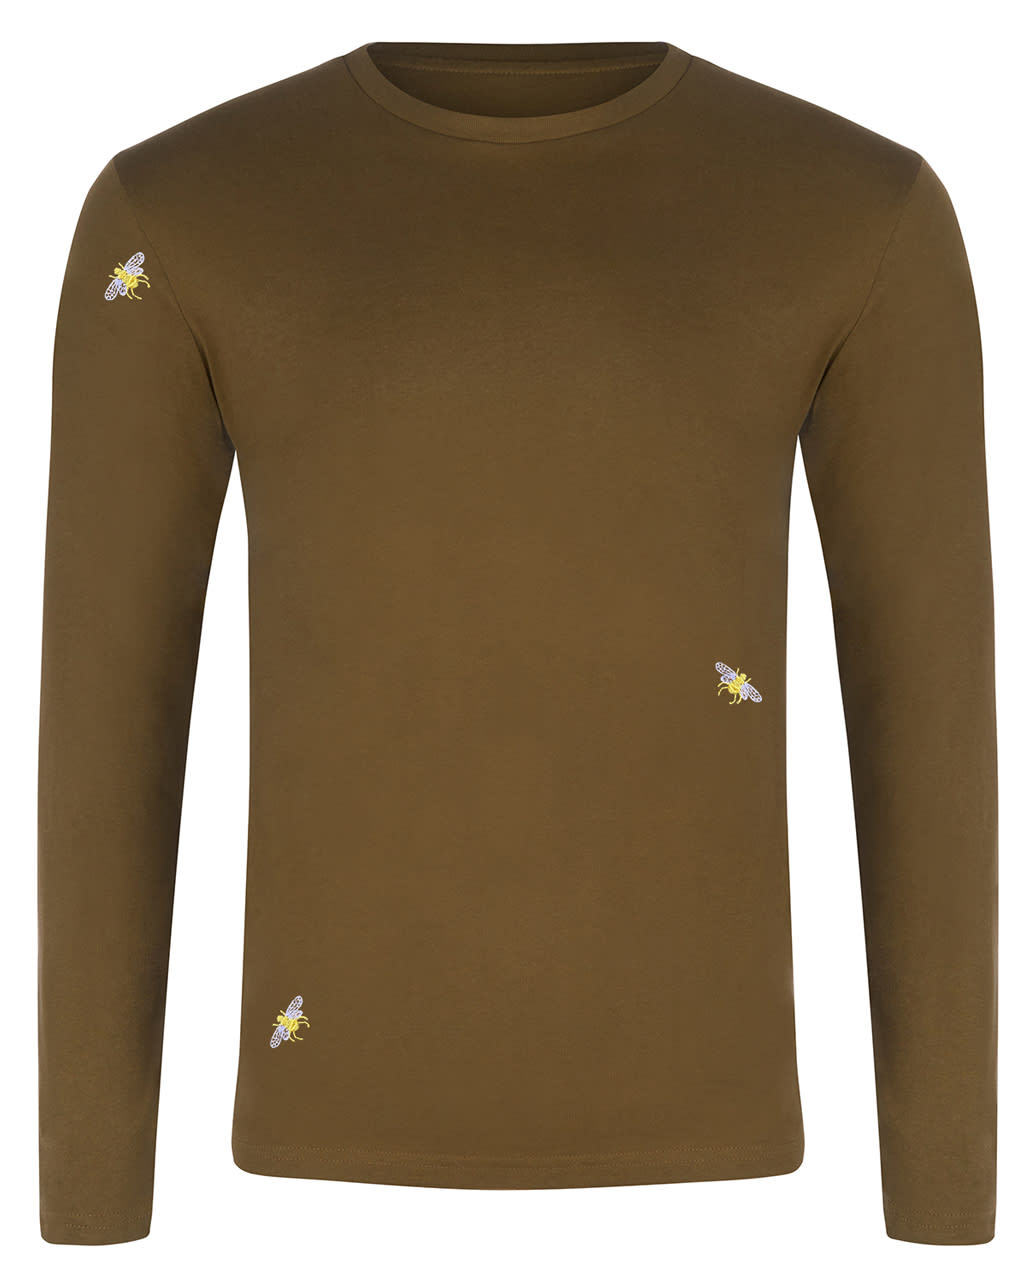 Bee Embroidered Long Sleeved Top Khaki